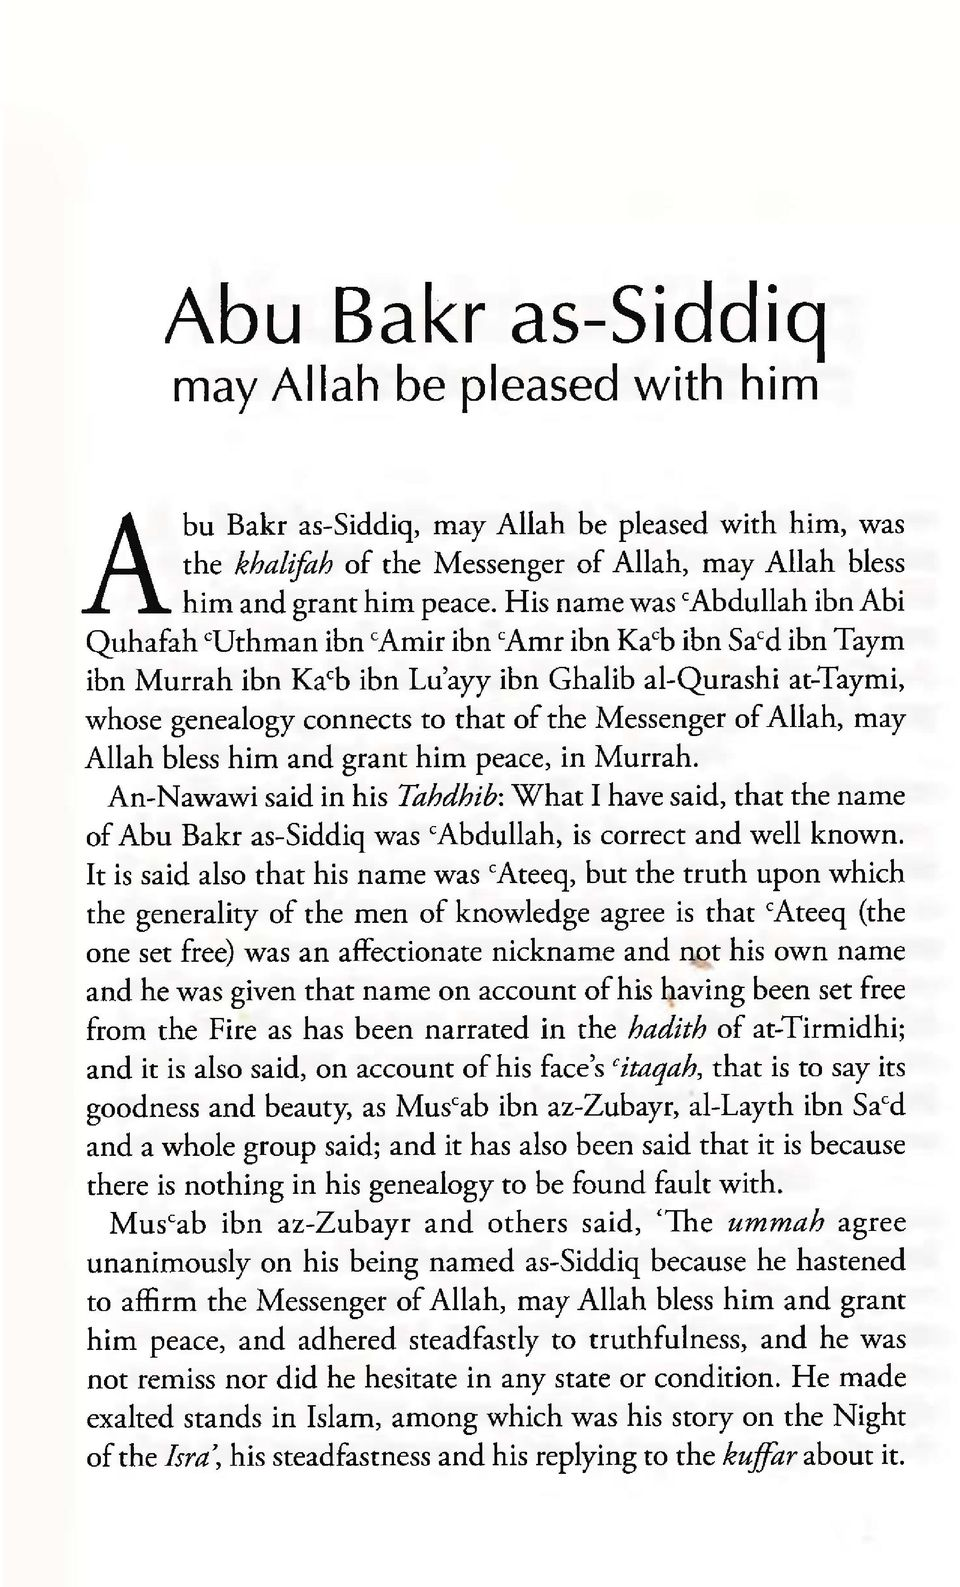 Messenger of Allah, may Allah bless him and grant him peace, in Murrah. An-Nawawi said in his Tahdhib: W hat I have said, that the name of Abu Bakr as-siddiq was cabdullah, is correct and well known.